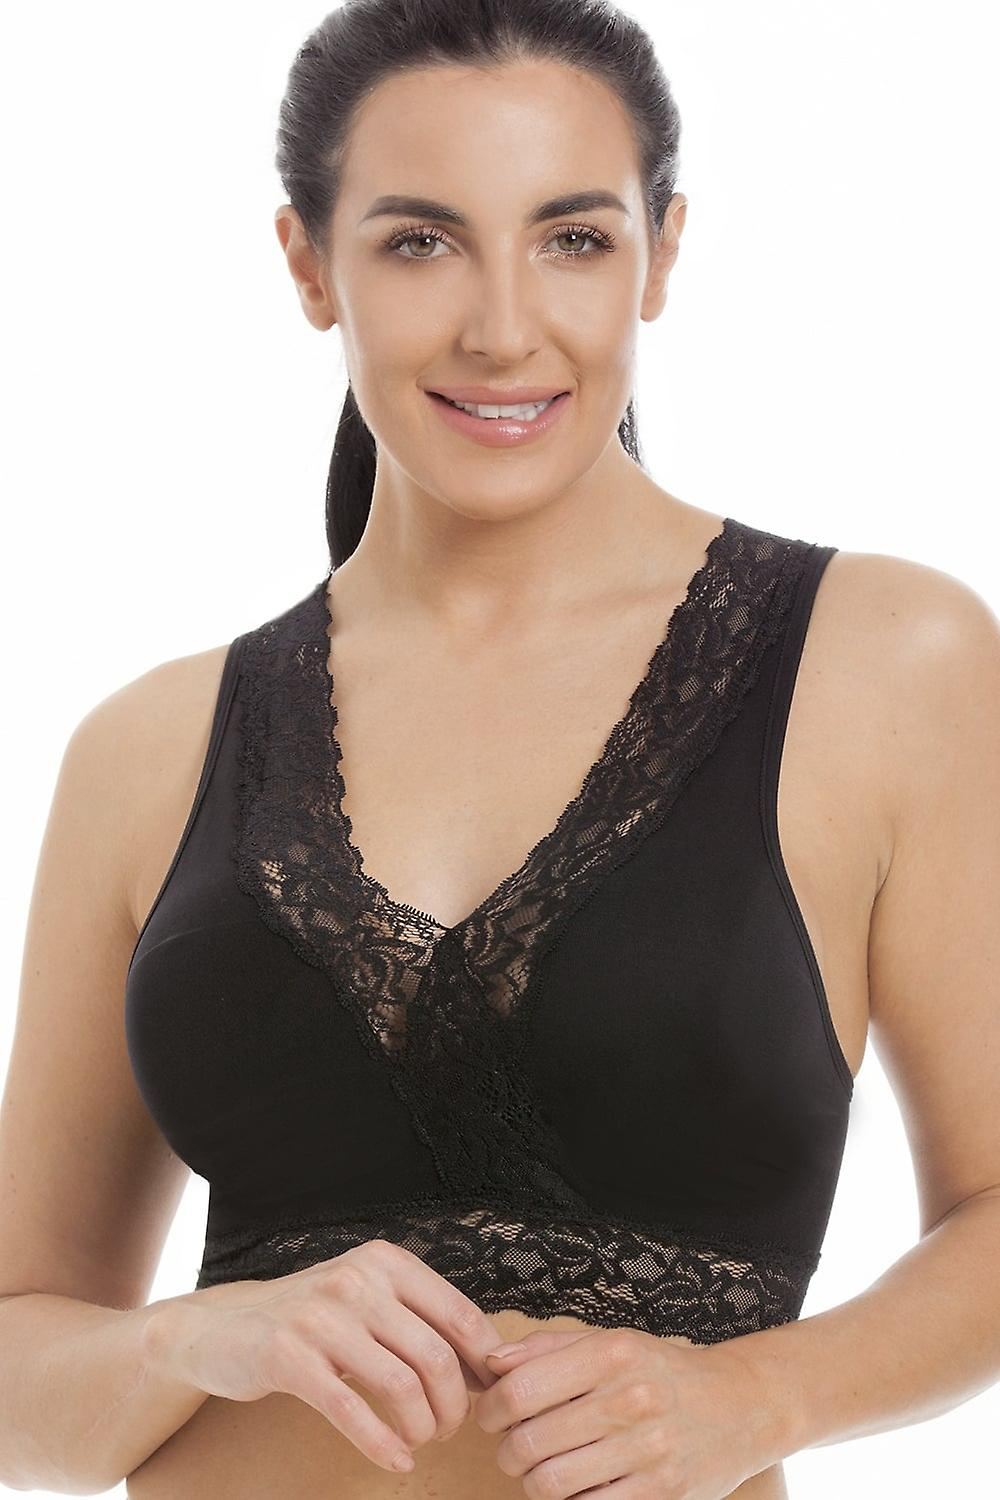 Camille Black Seamfree Maternity Lace Sleeping Bra